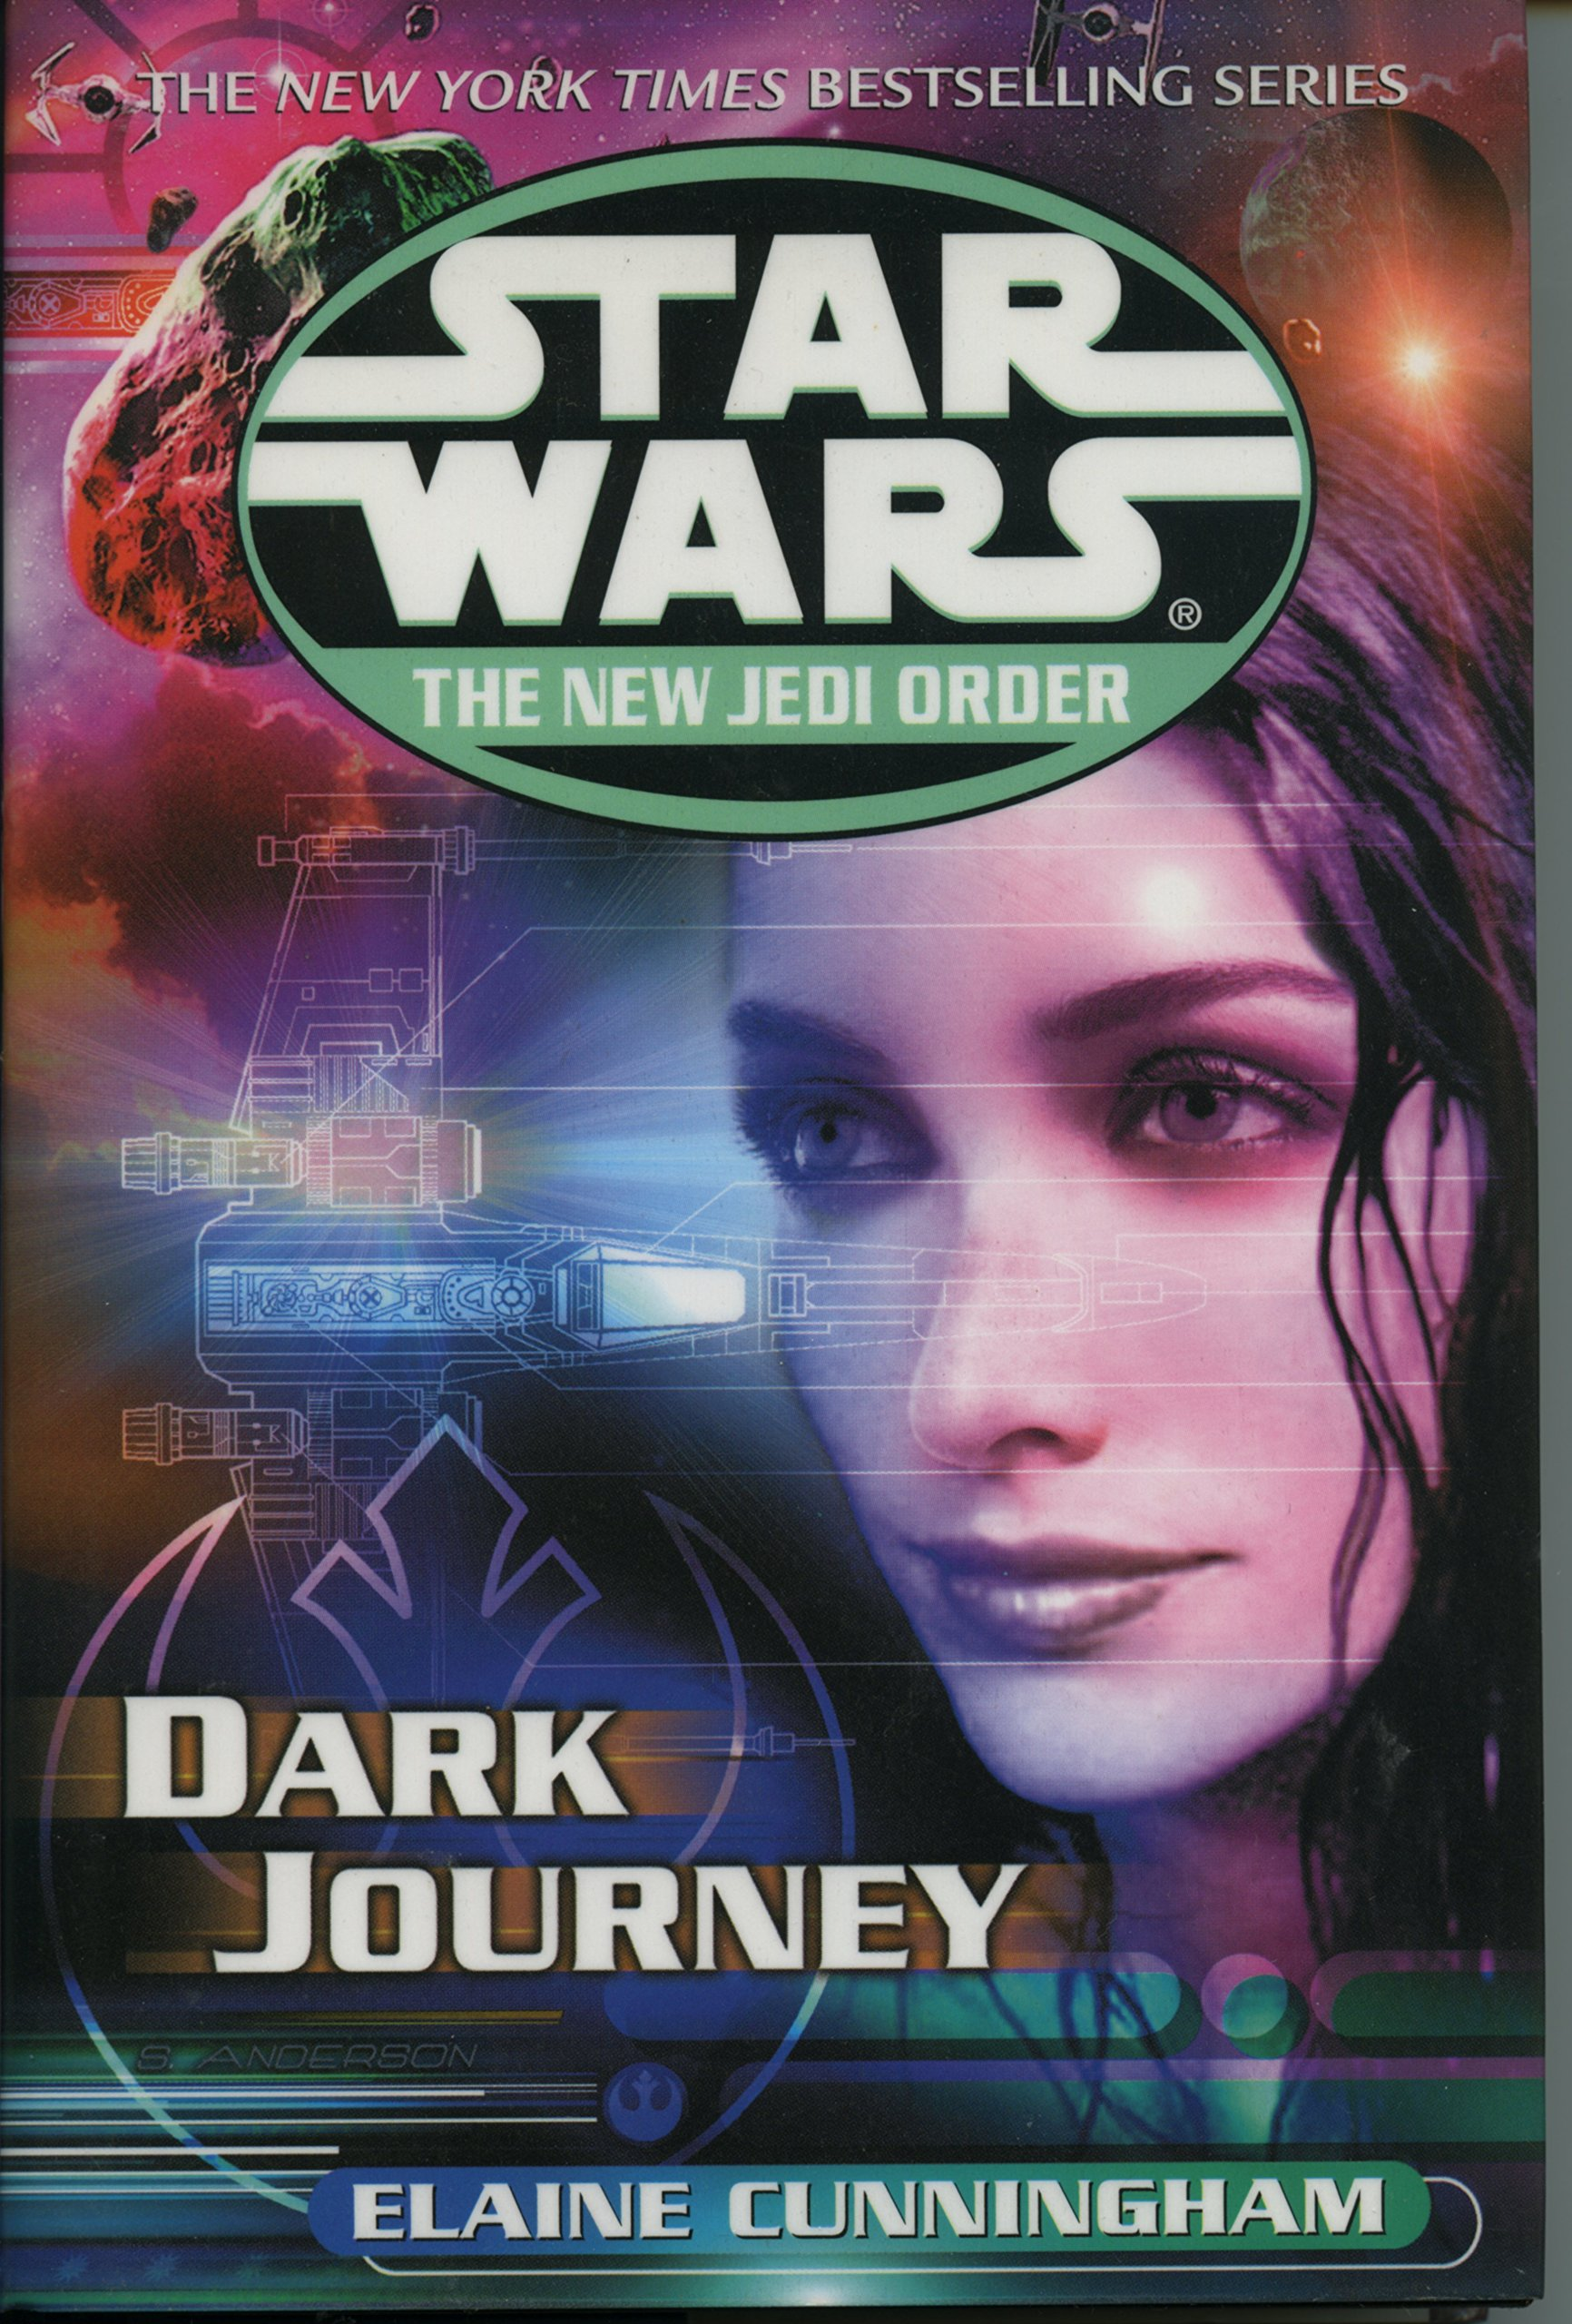 Star Wars The New Jedi Order: Dark Journey